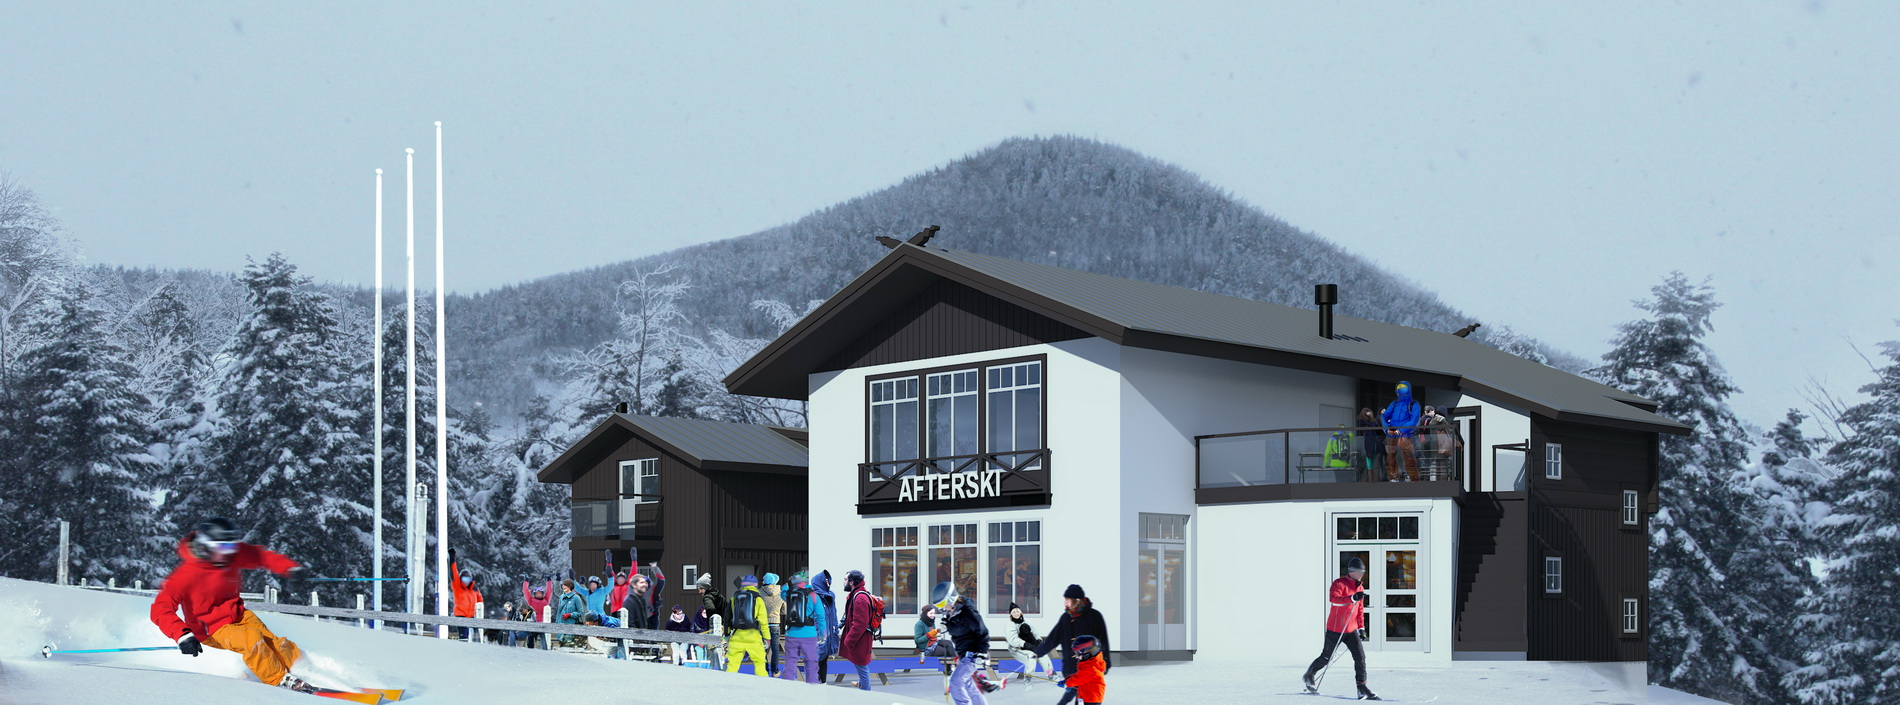 AFTERSKI_VIEW_1C_resize